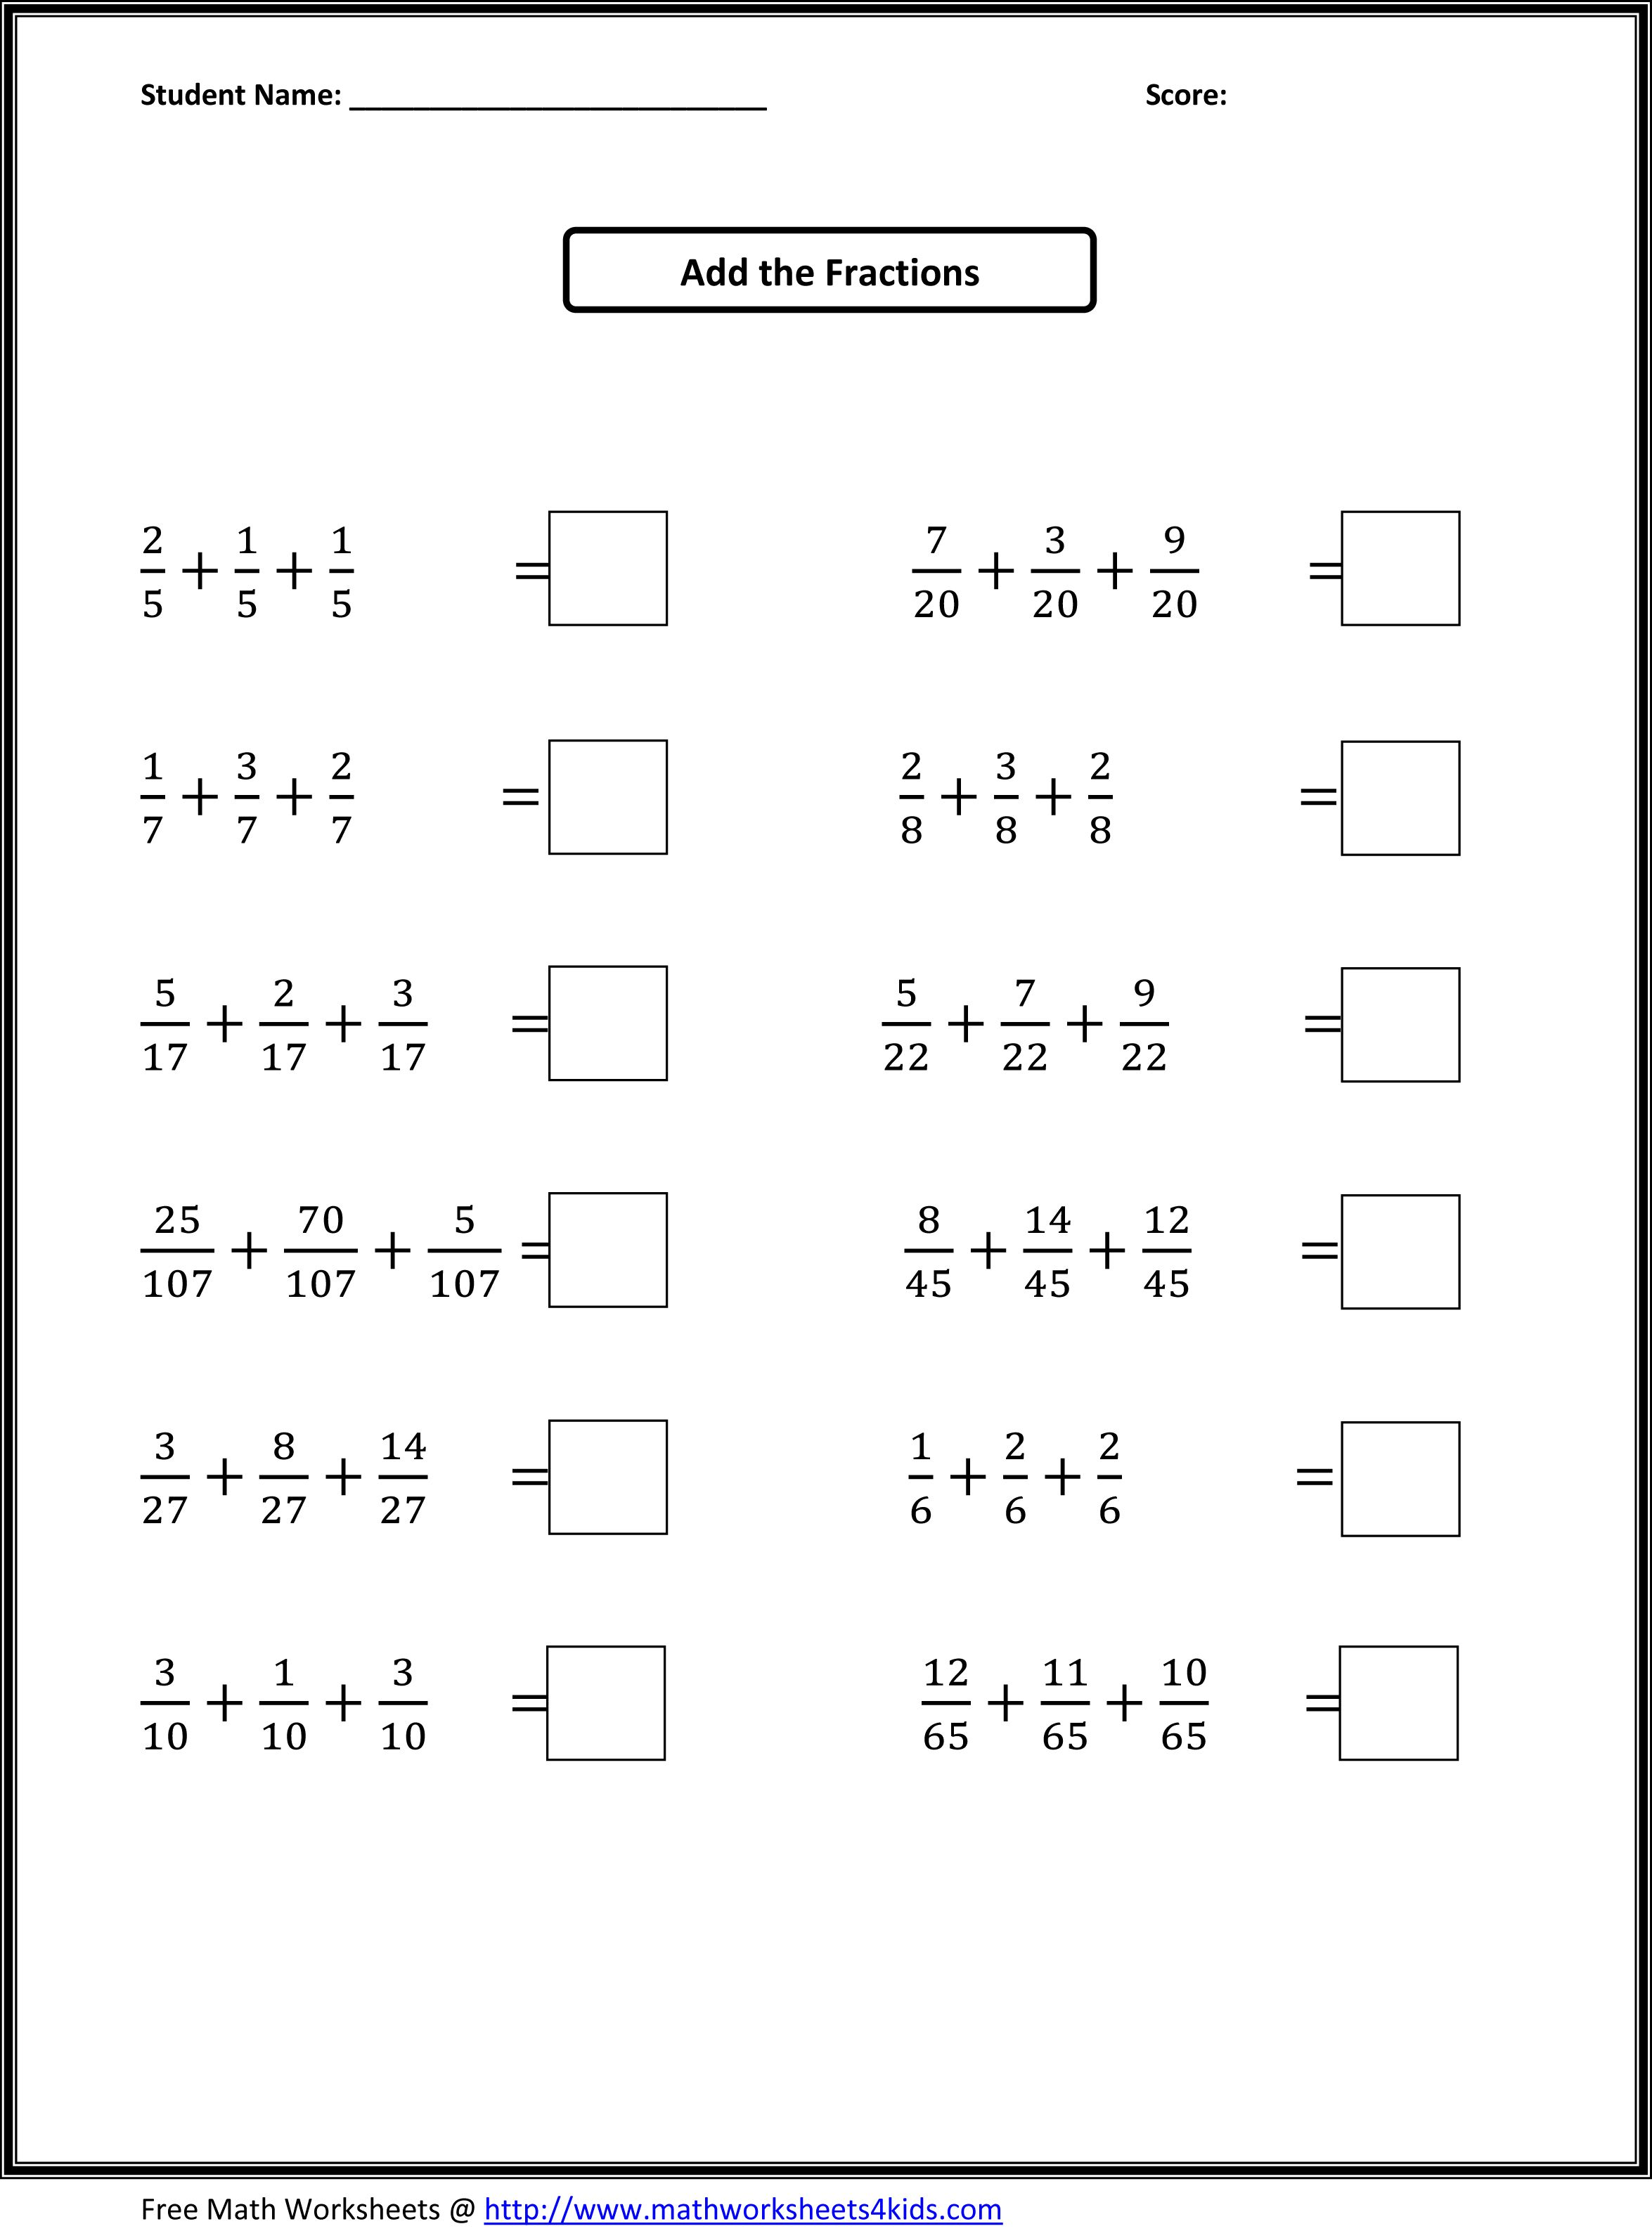 Printables Math Worksheet For 4th Graders 1000 images about math worksheets on pinterest 4th grade geometry and fourth math